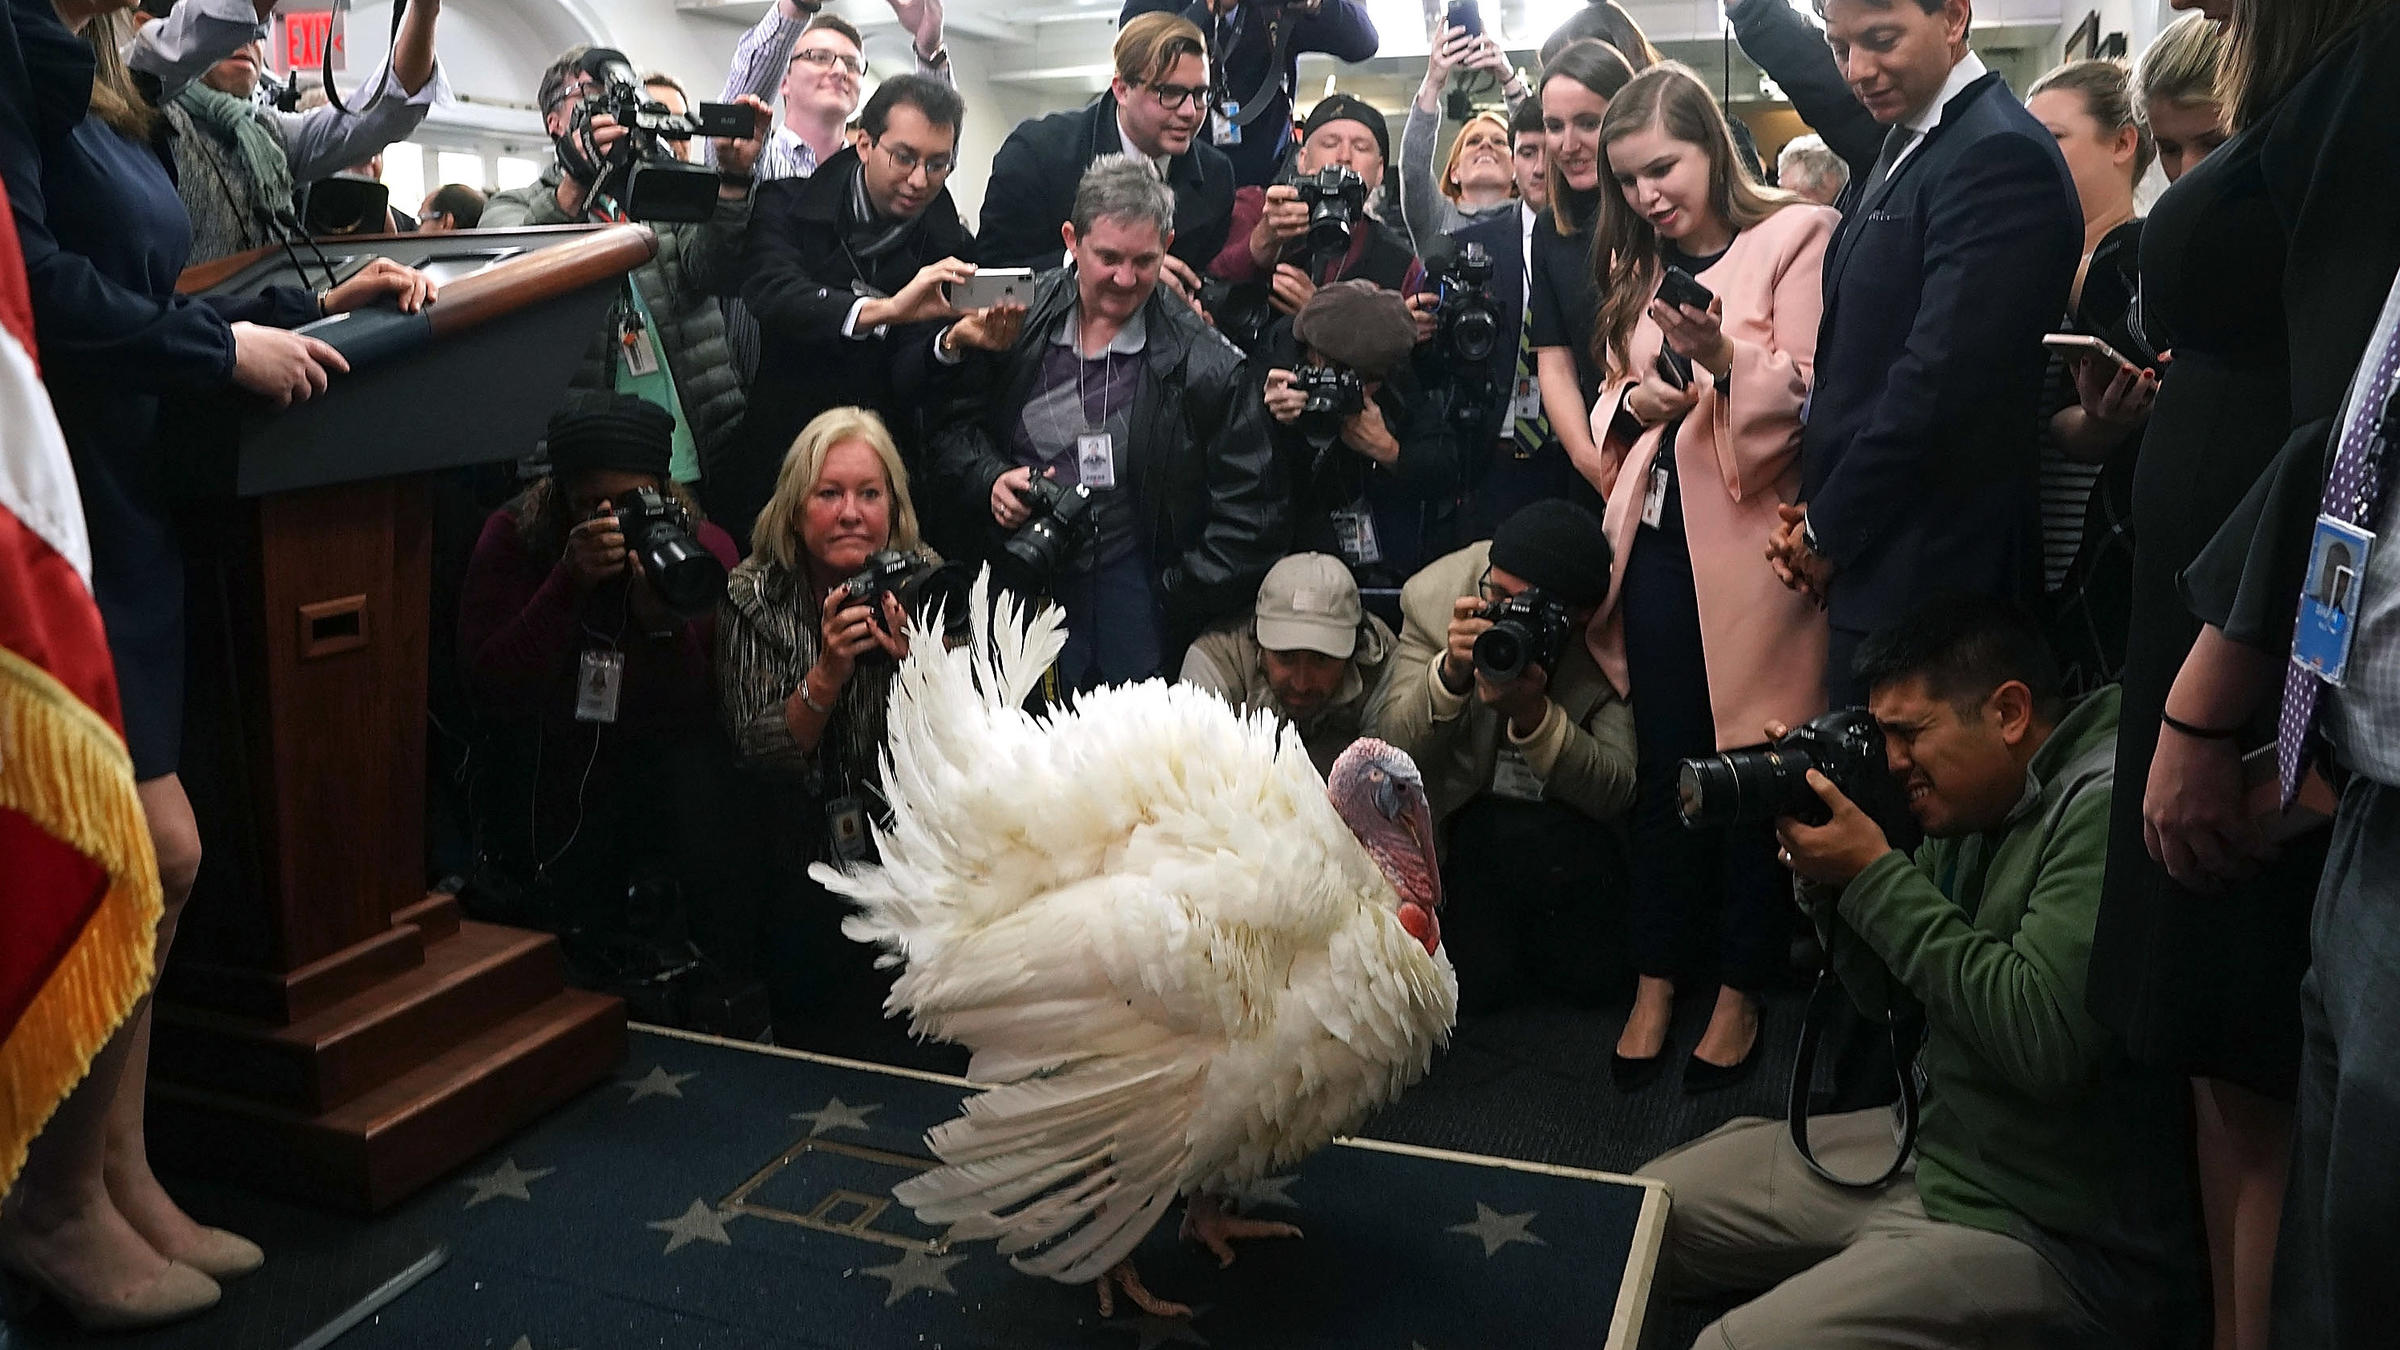 MN turkeys get their own luxury hotel room before pardoning ceremony